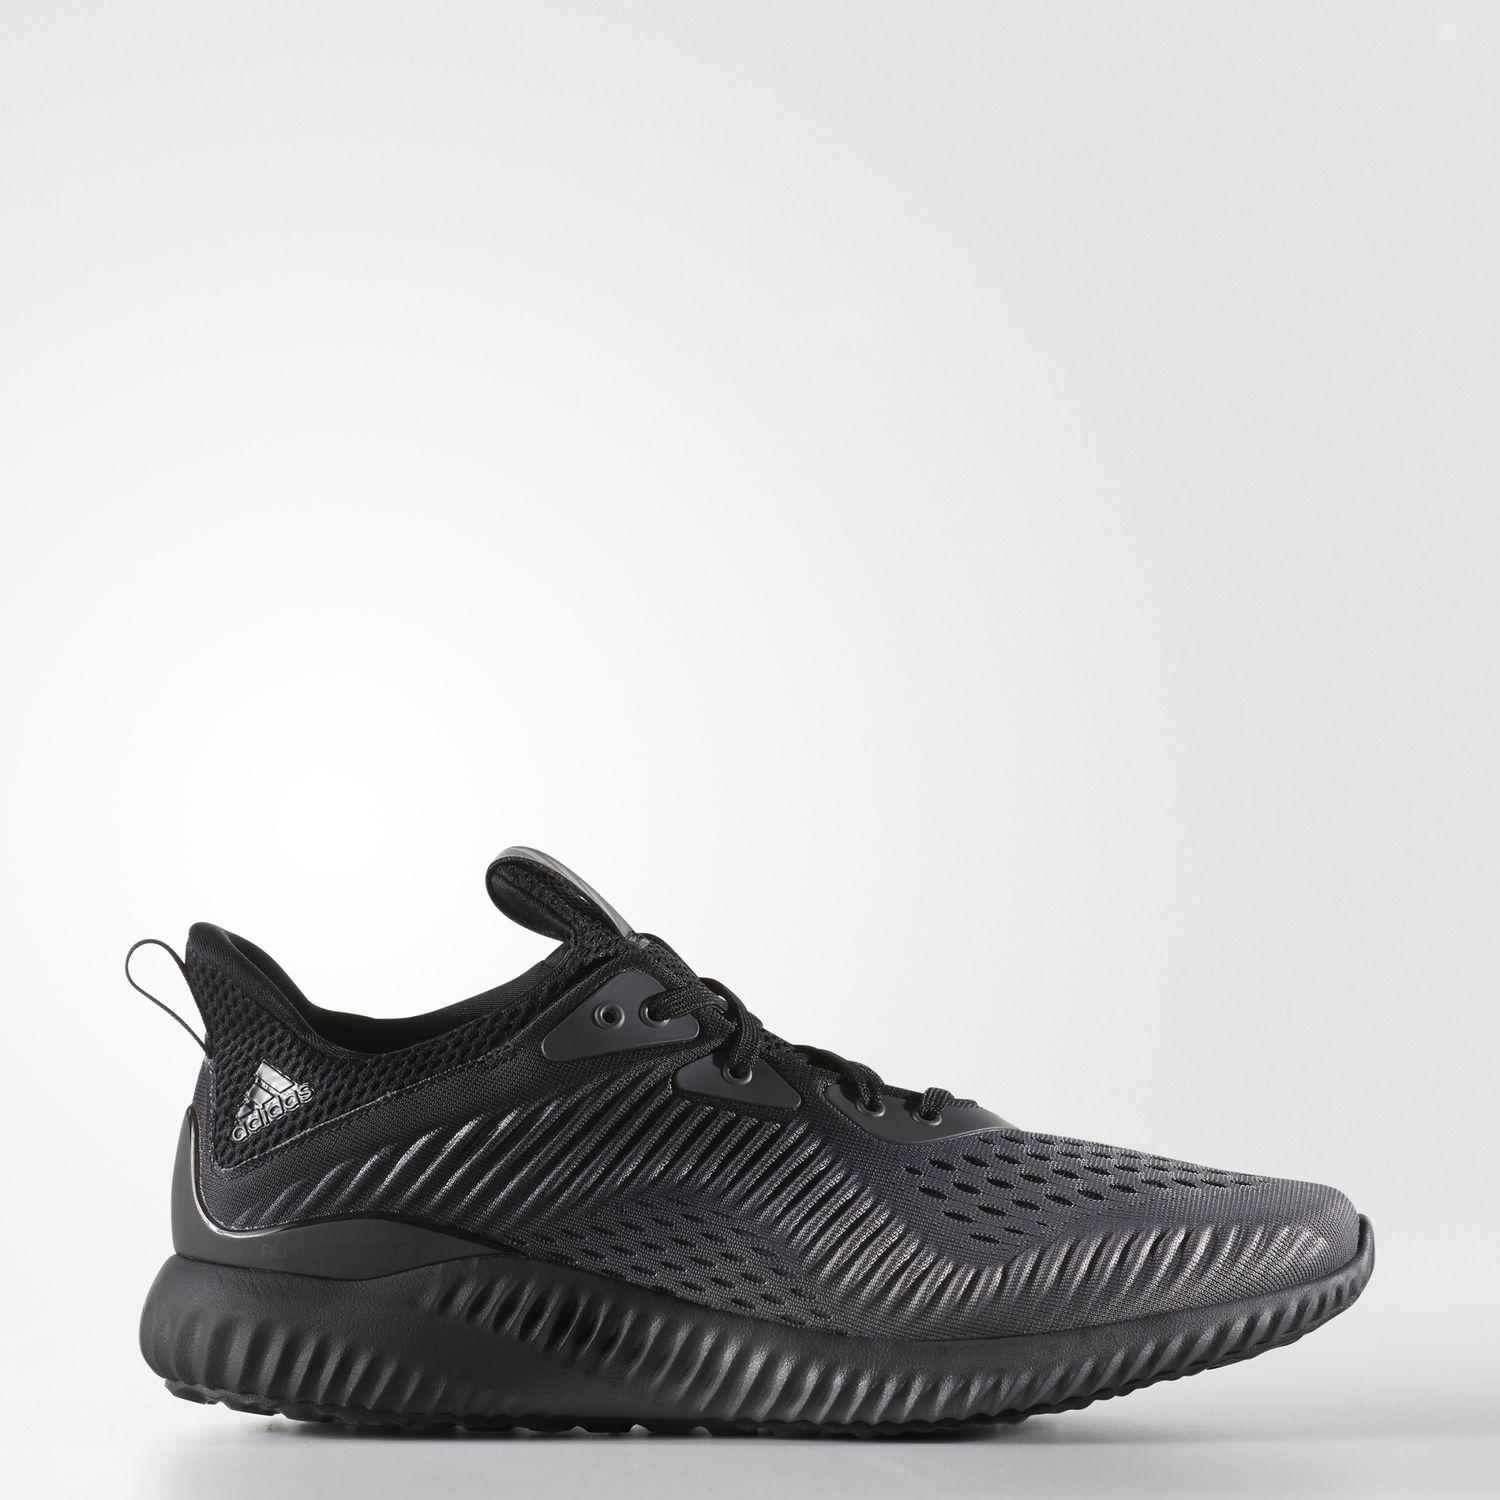 2c814089f6b8 Adidas Shoes Alphabounce Em Core Balck grey ftw White - Tifoshop.com